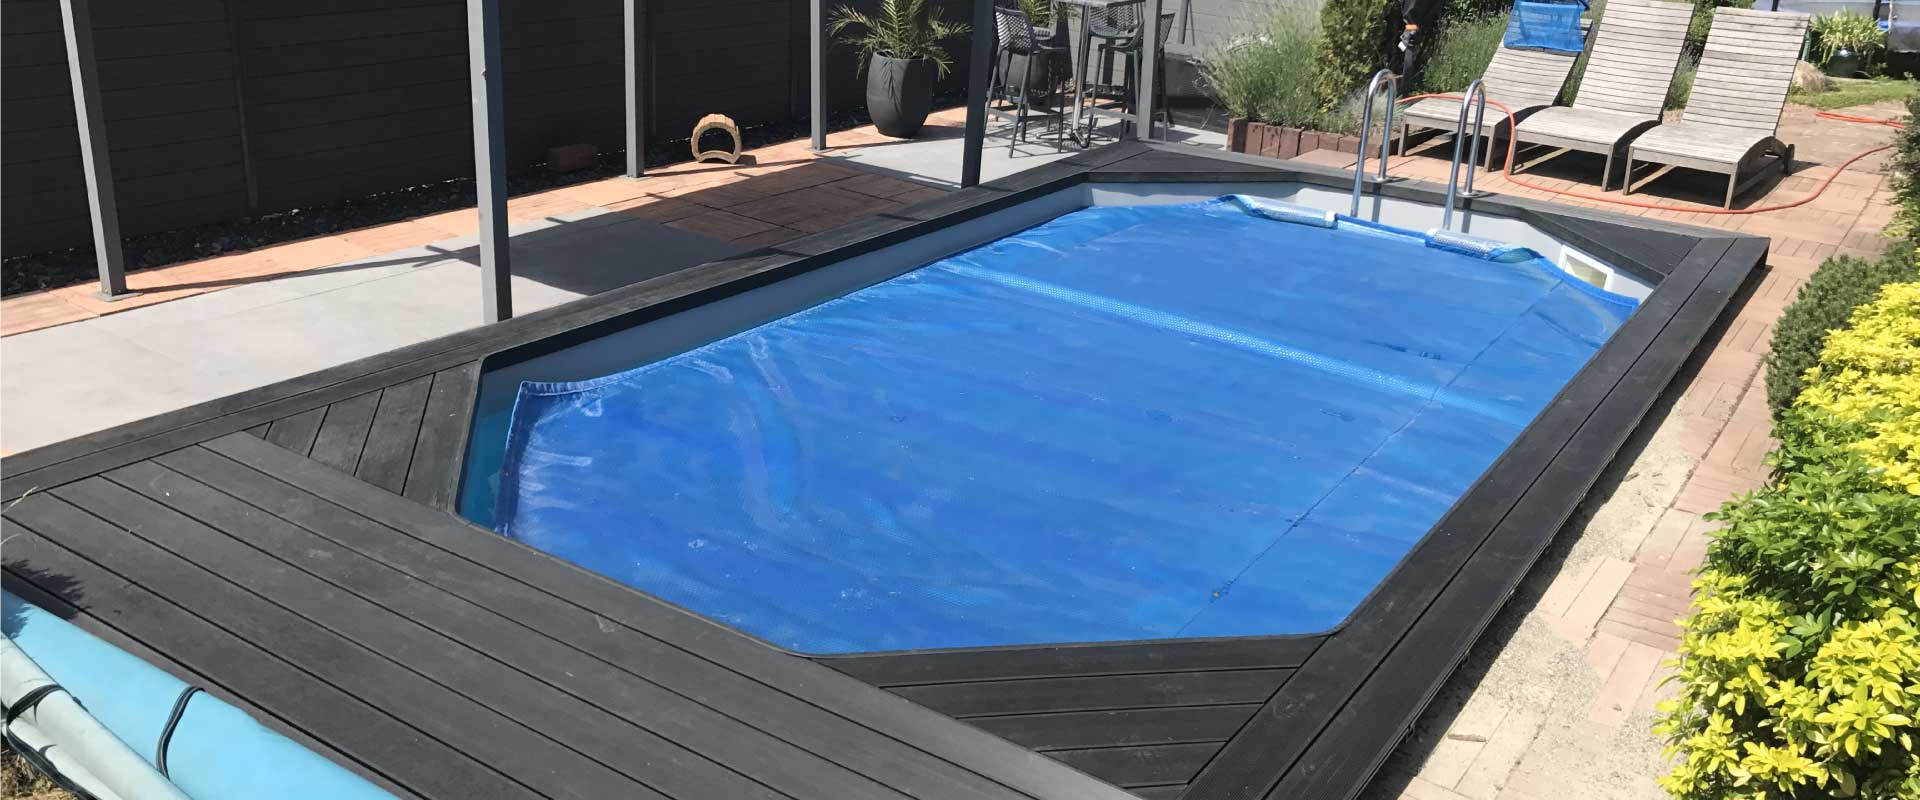 Accueil horti net for Piscine composite